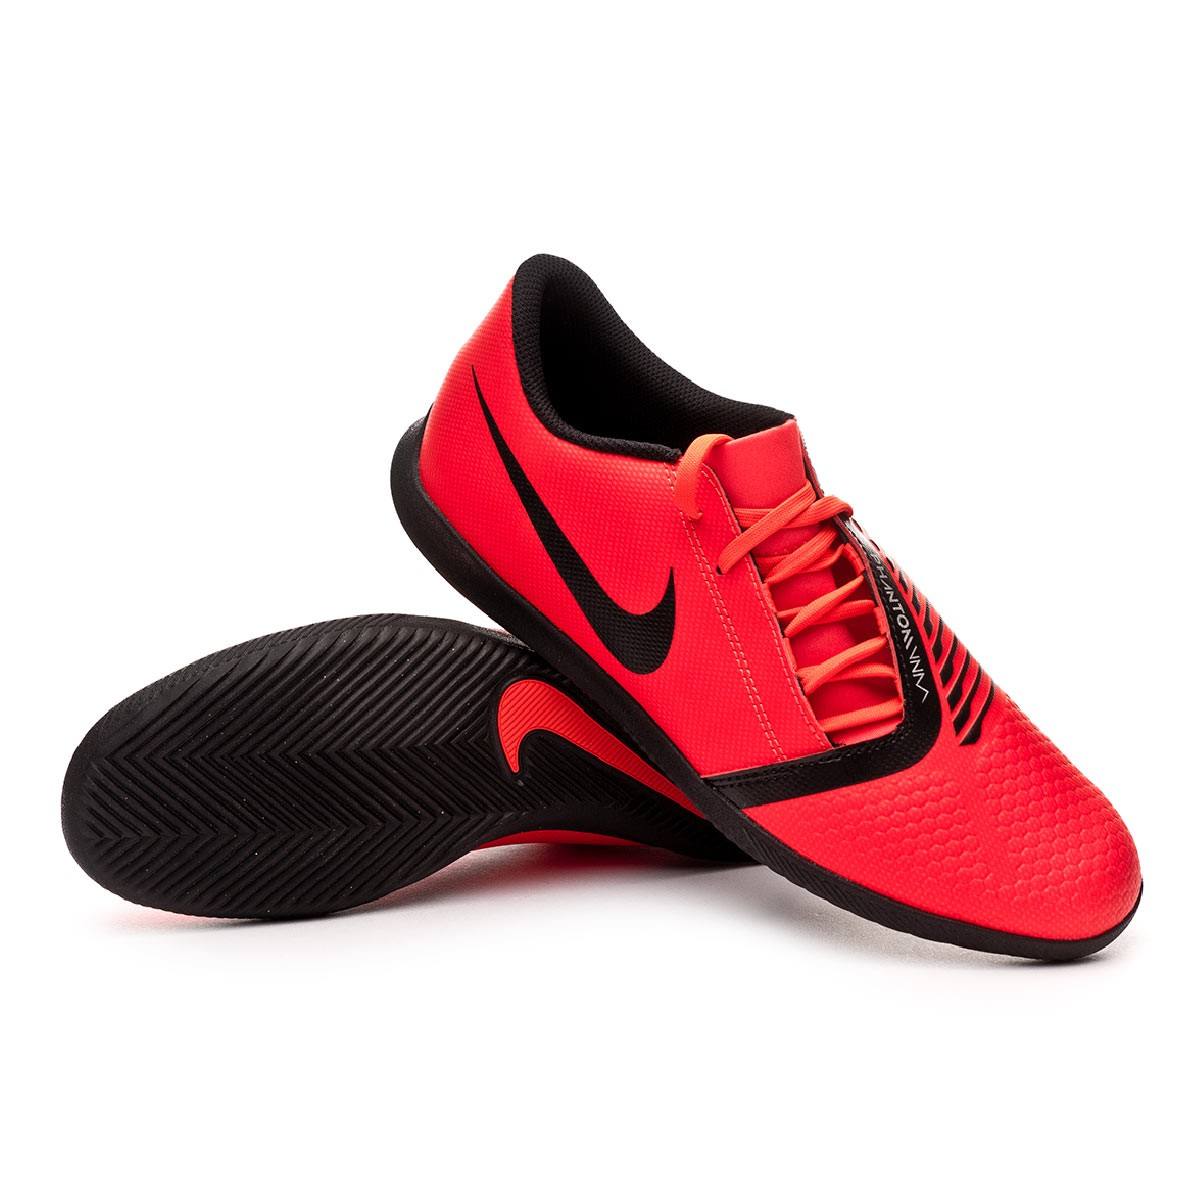 the best attitude f02f8 f9929 Futsal Boot Nike Phantom Venom Club IC Bright crimson-Black - Football  store Fútbol Emotion